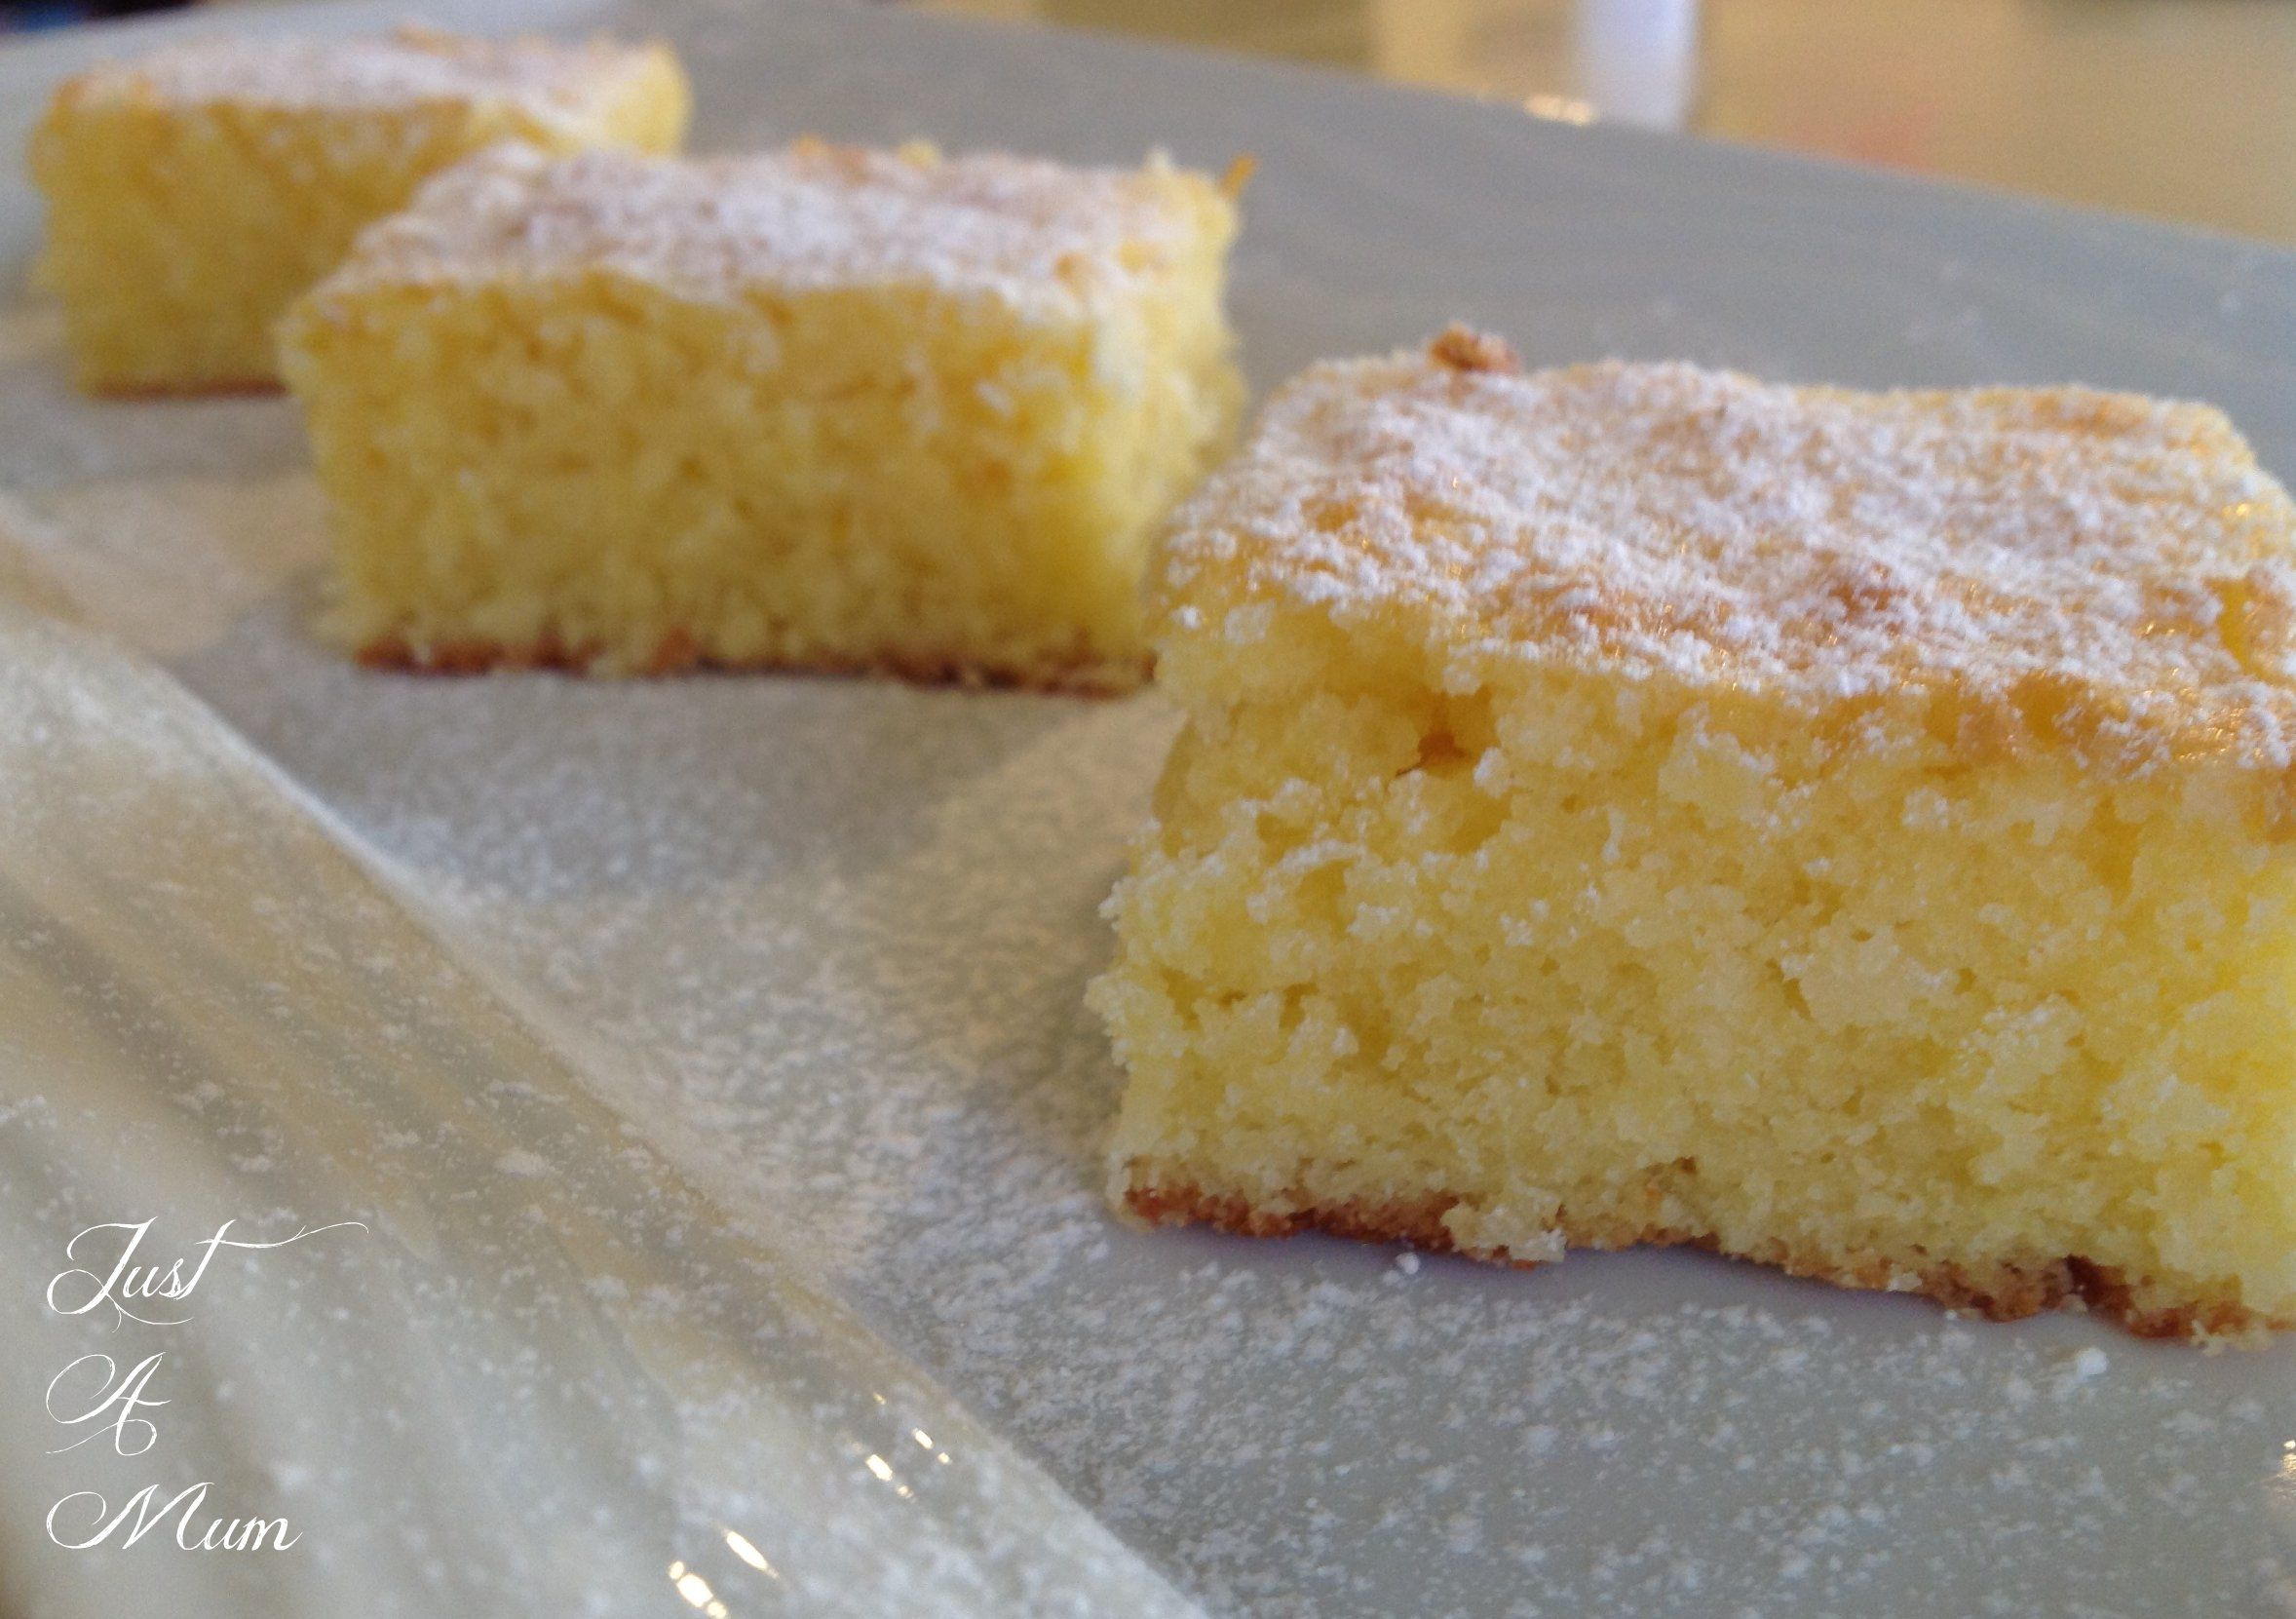 Lemon and Coconut Slice - made this with lime and it is wonderful!